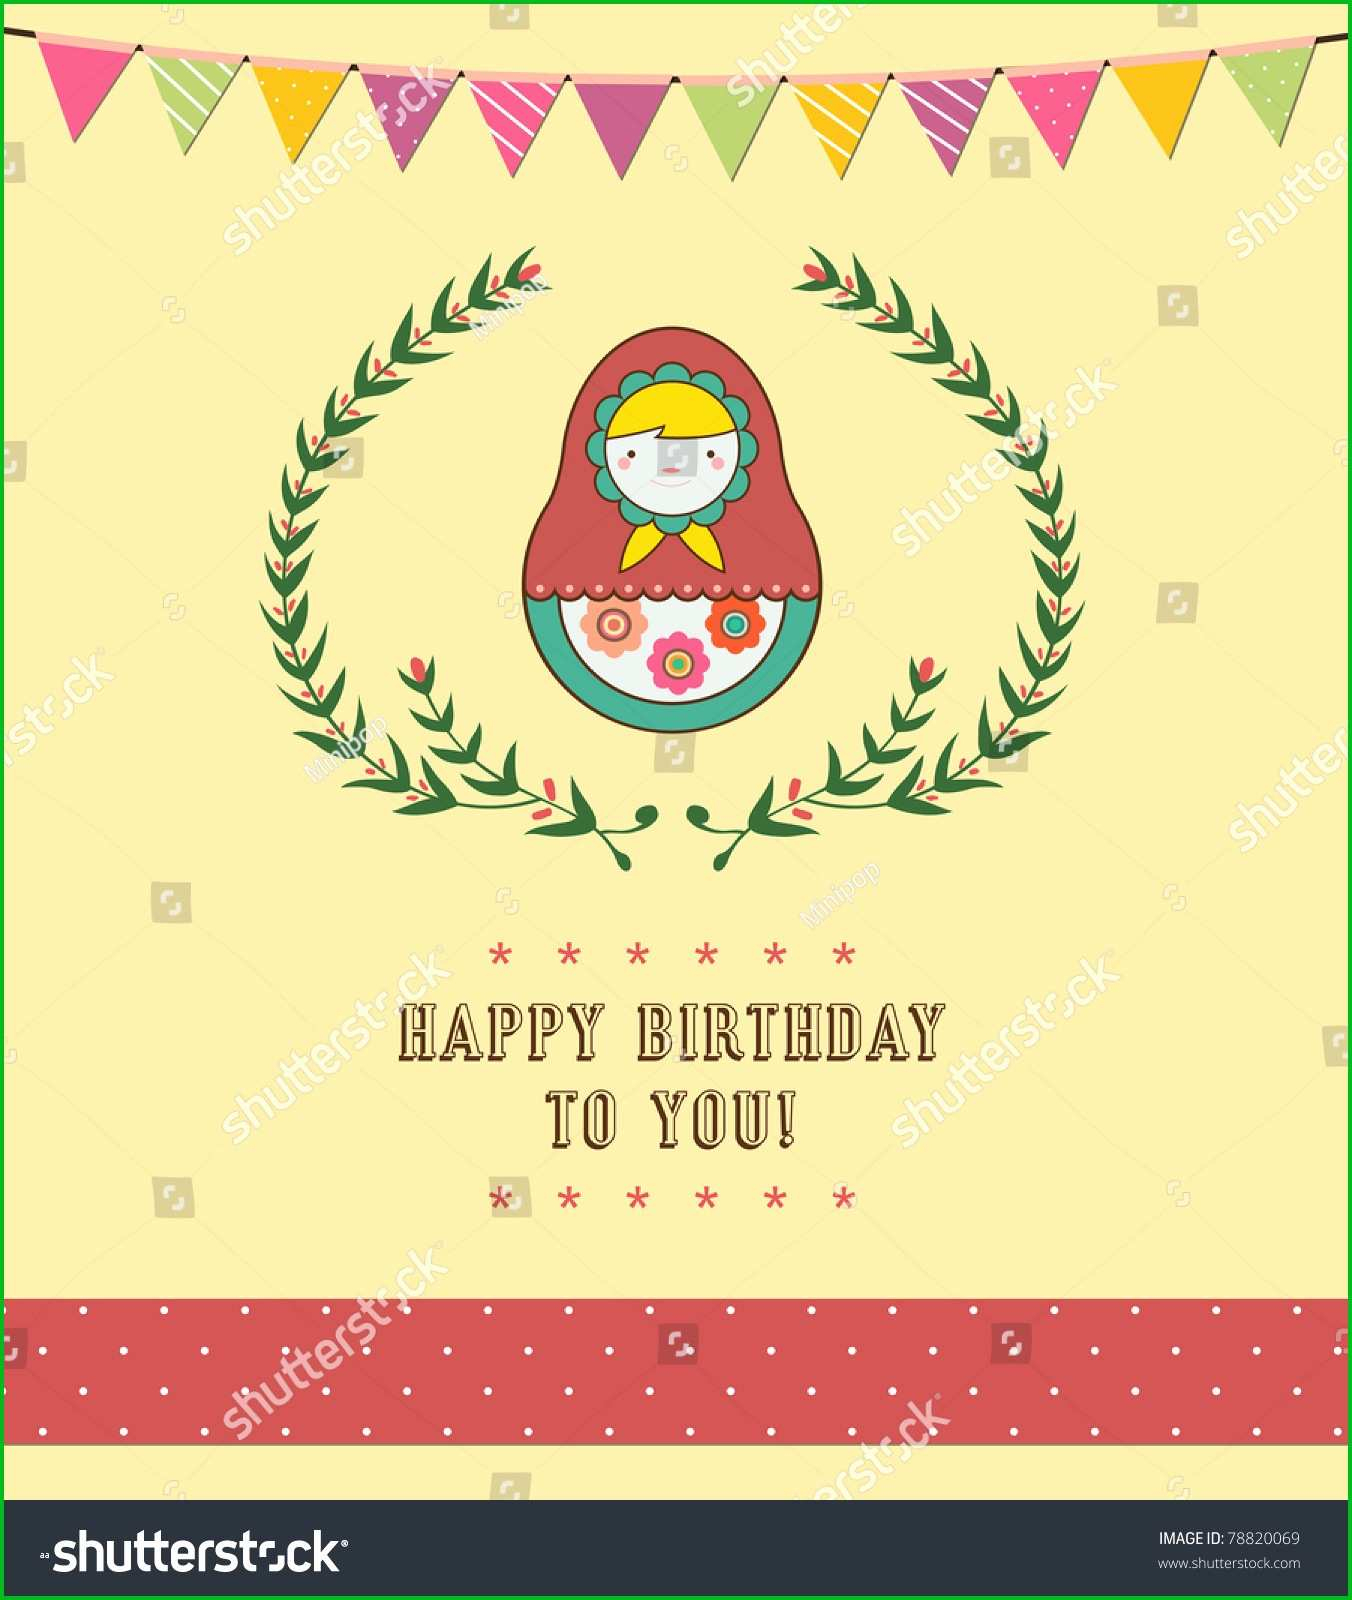 Russian Birthday Cards Unique 44 Russian Birthday Wishes | Birthday - Free Printable Russian Birthday Cards